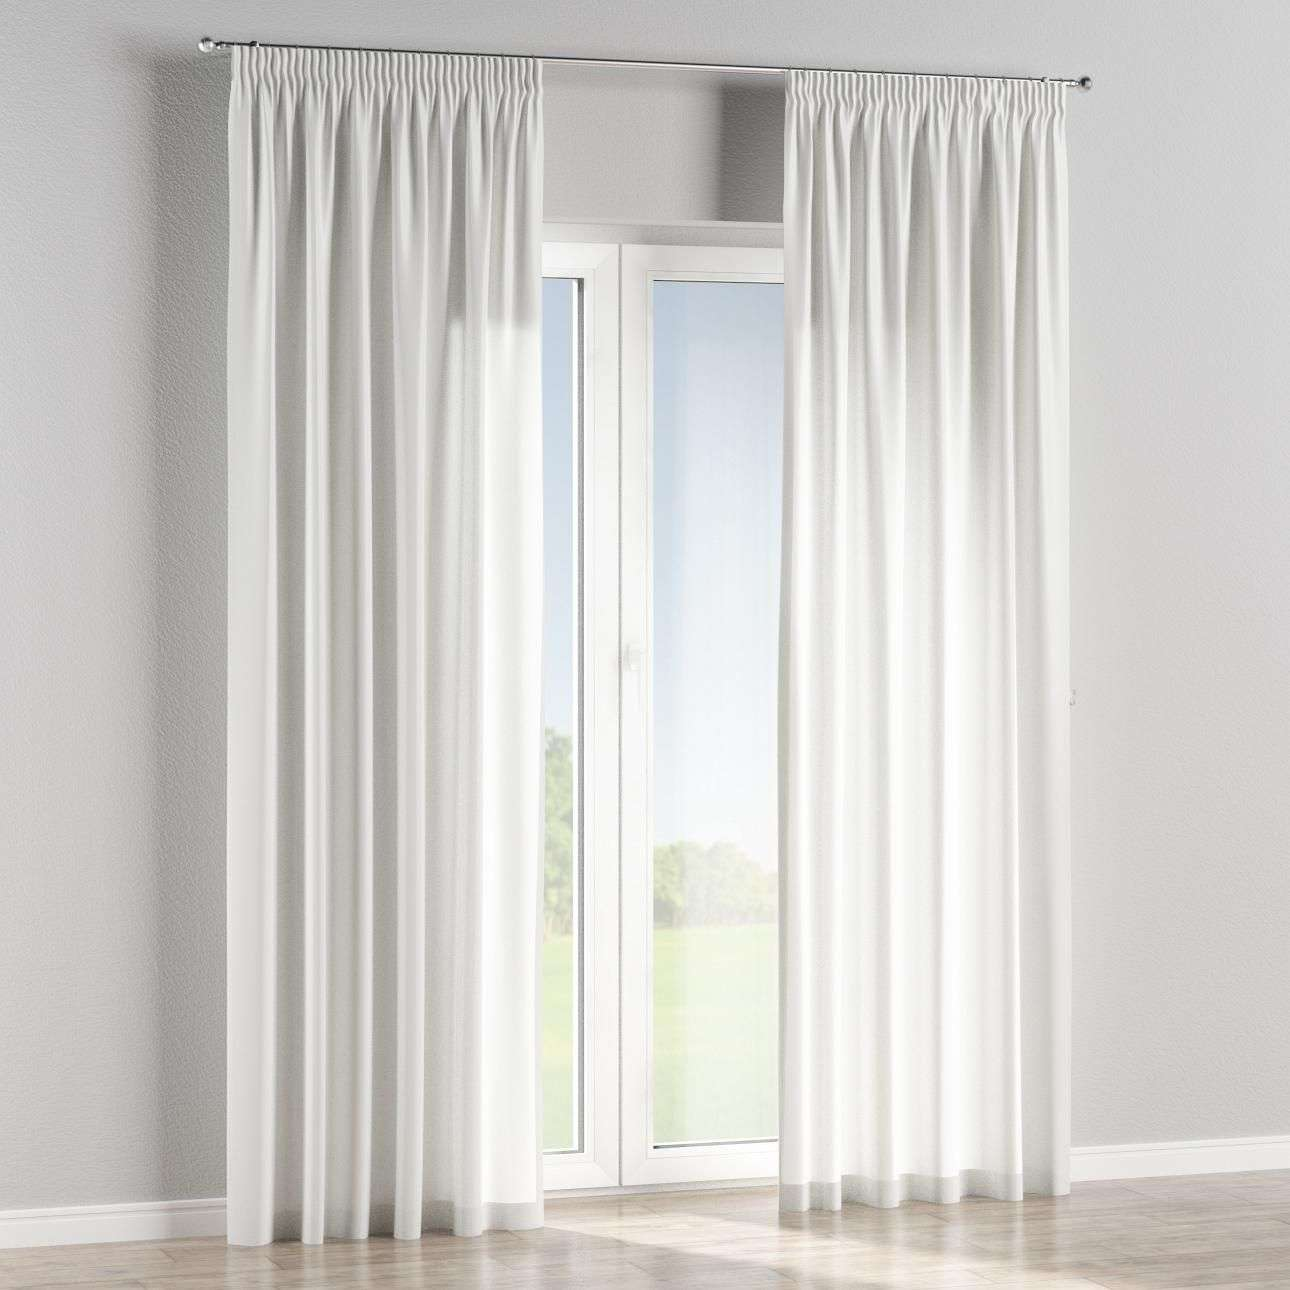 Pencil pleat curtains in collection Nordic, fabric: 630-21